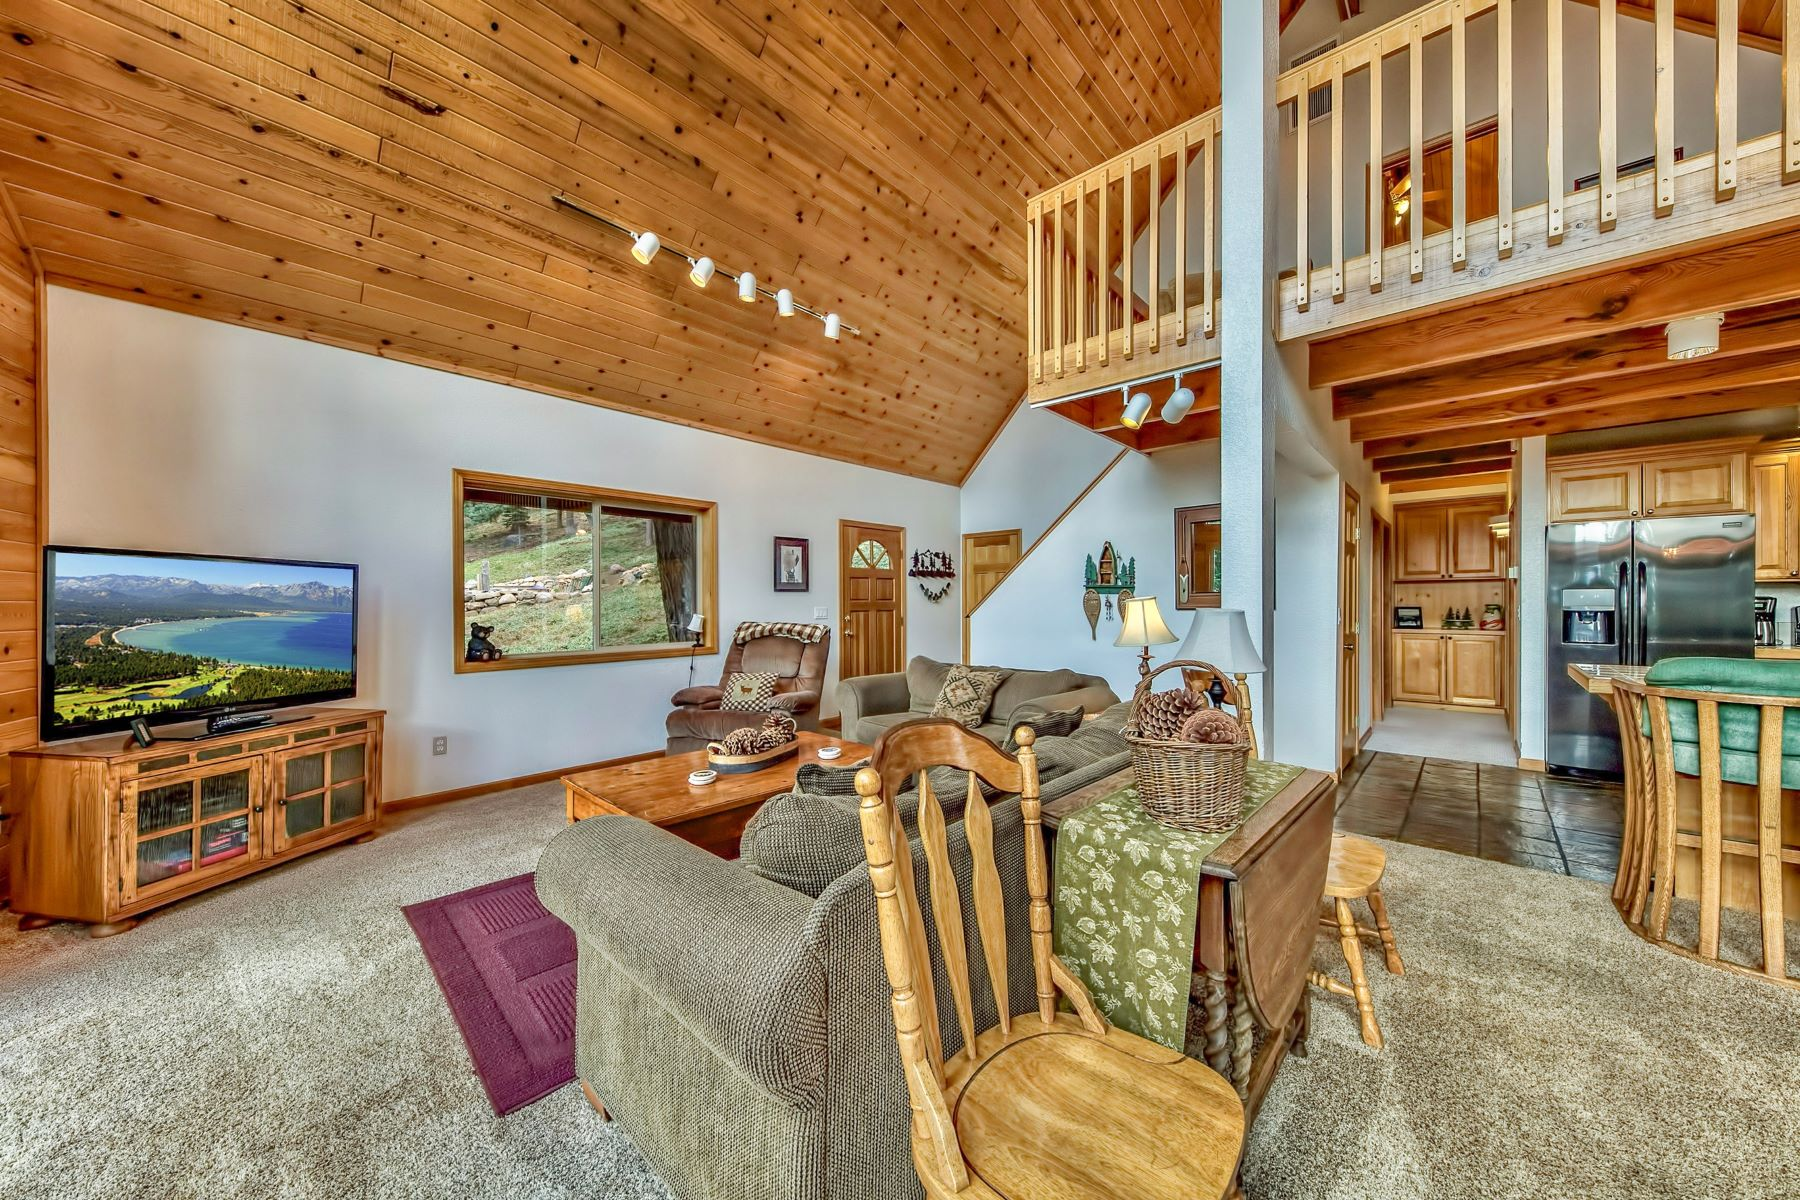 Additional photo for property listing at 11240 Skislope Way, Truckee, CA 11240 Skislope Way Truckee, California 96161 United States